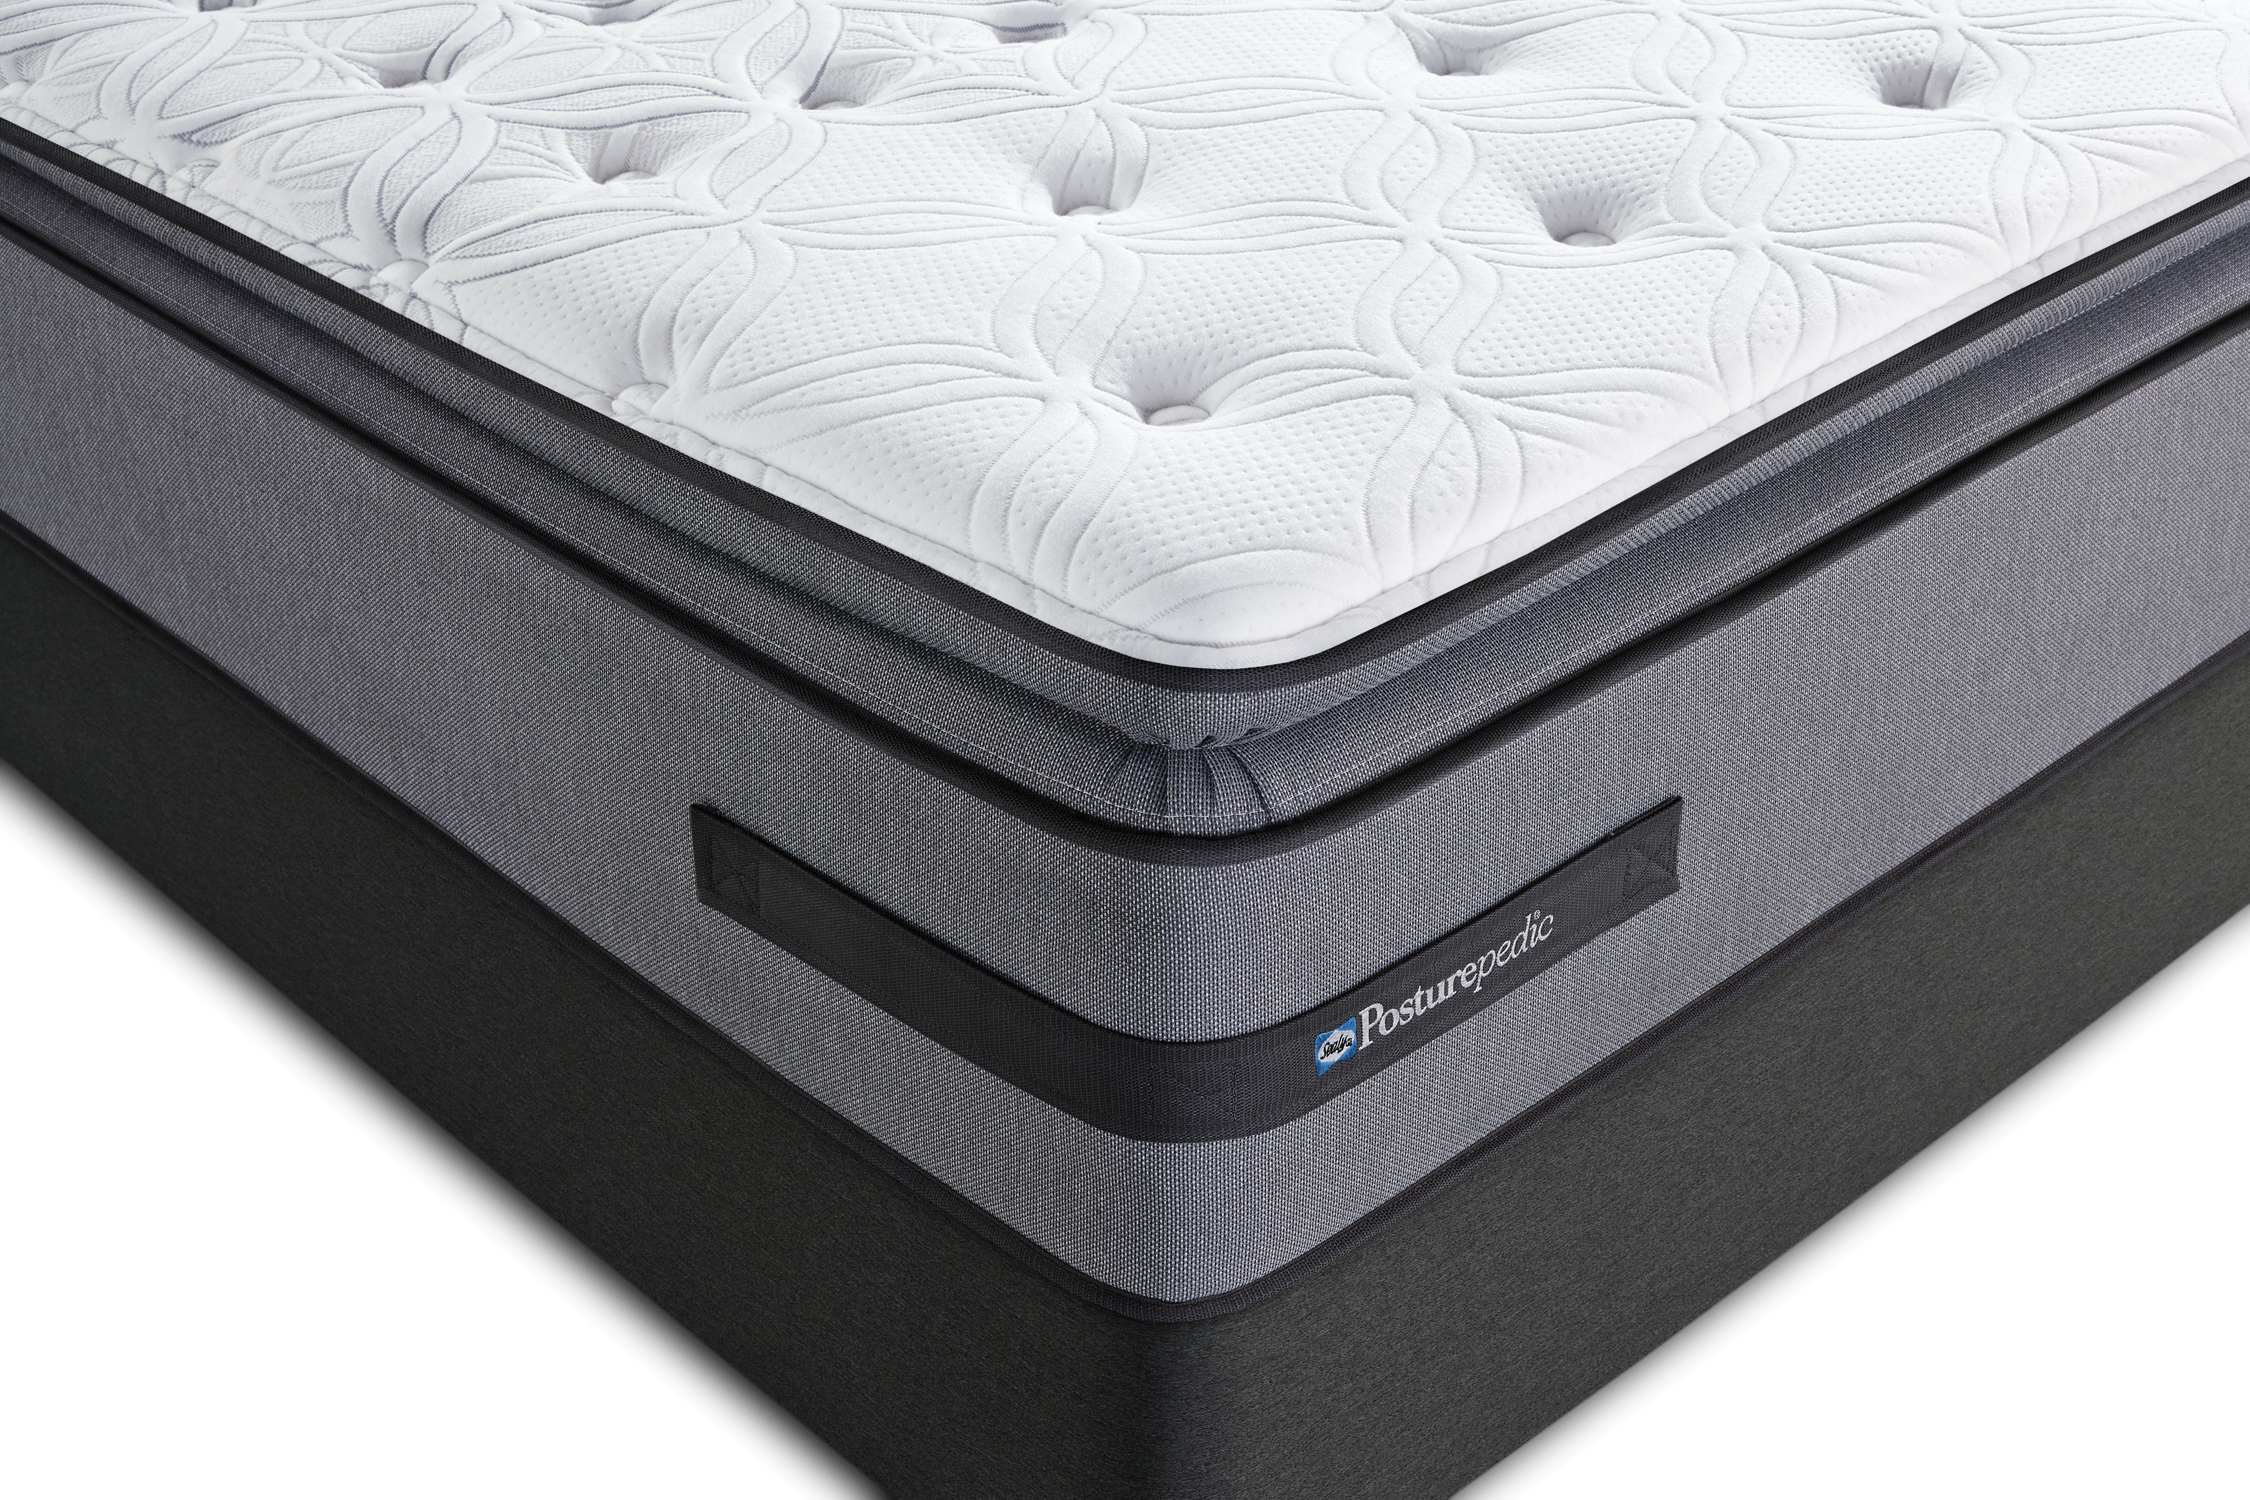 Types Of Mattresses >> Sealy Posturepedic Plus Randolph Terrace Euro Top Plush Mattress